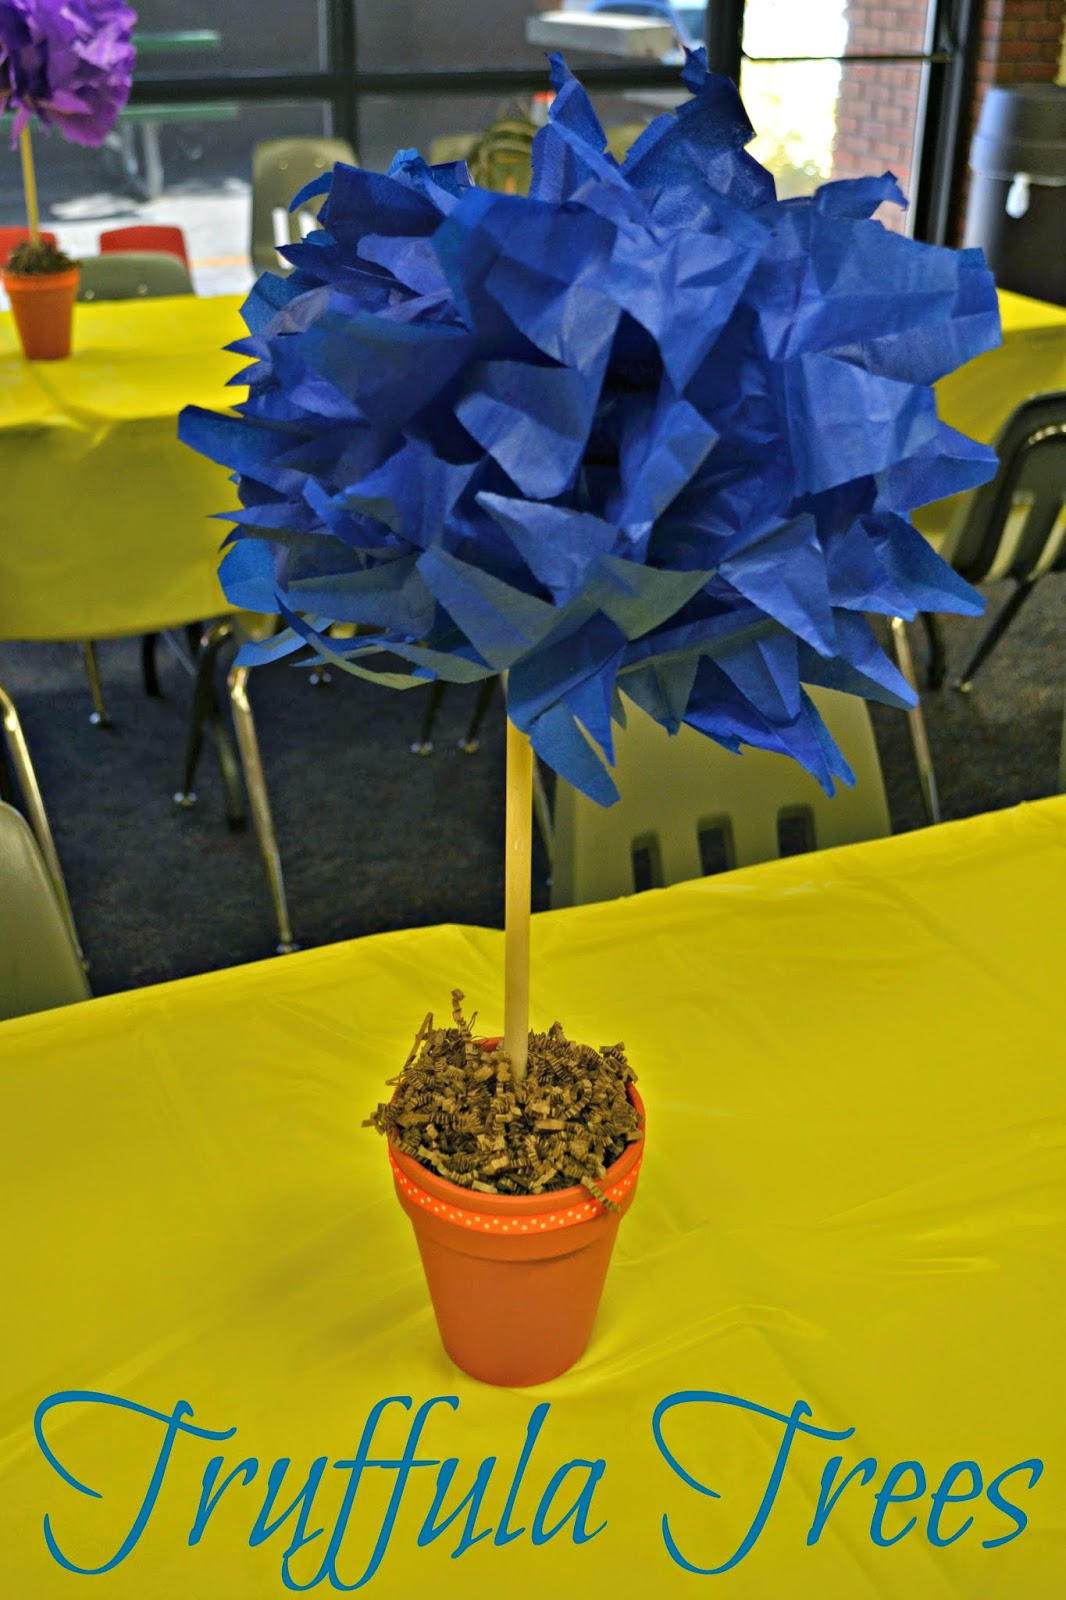 Lorax Birthday Party - Truffula Tree Centerpieces #DIY Lorax Birthday Decorations.  How to make Truffula Trees